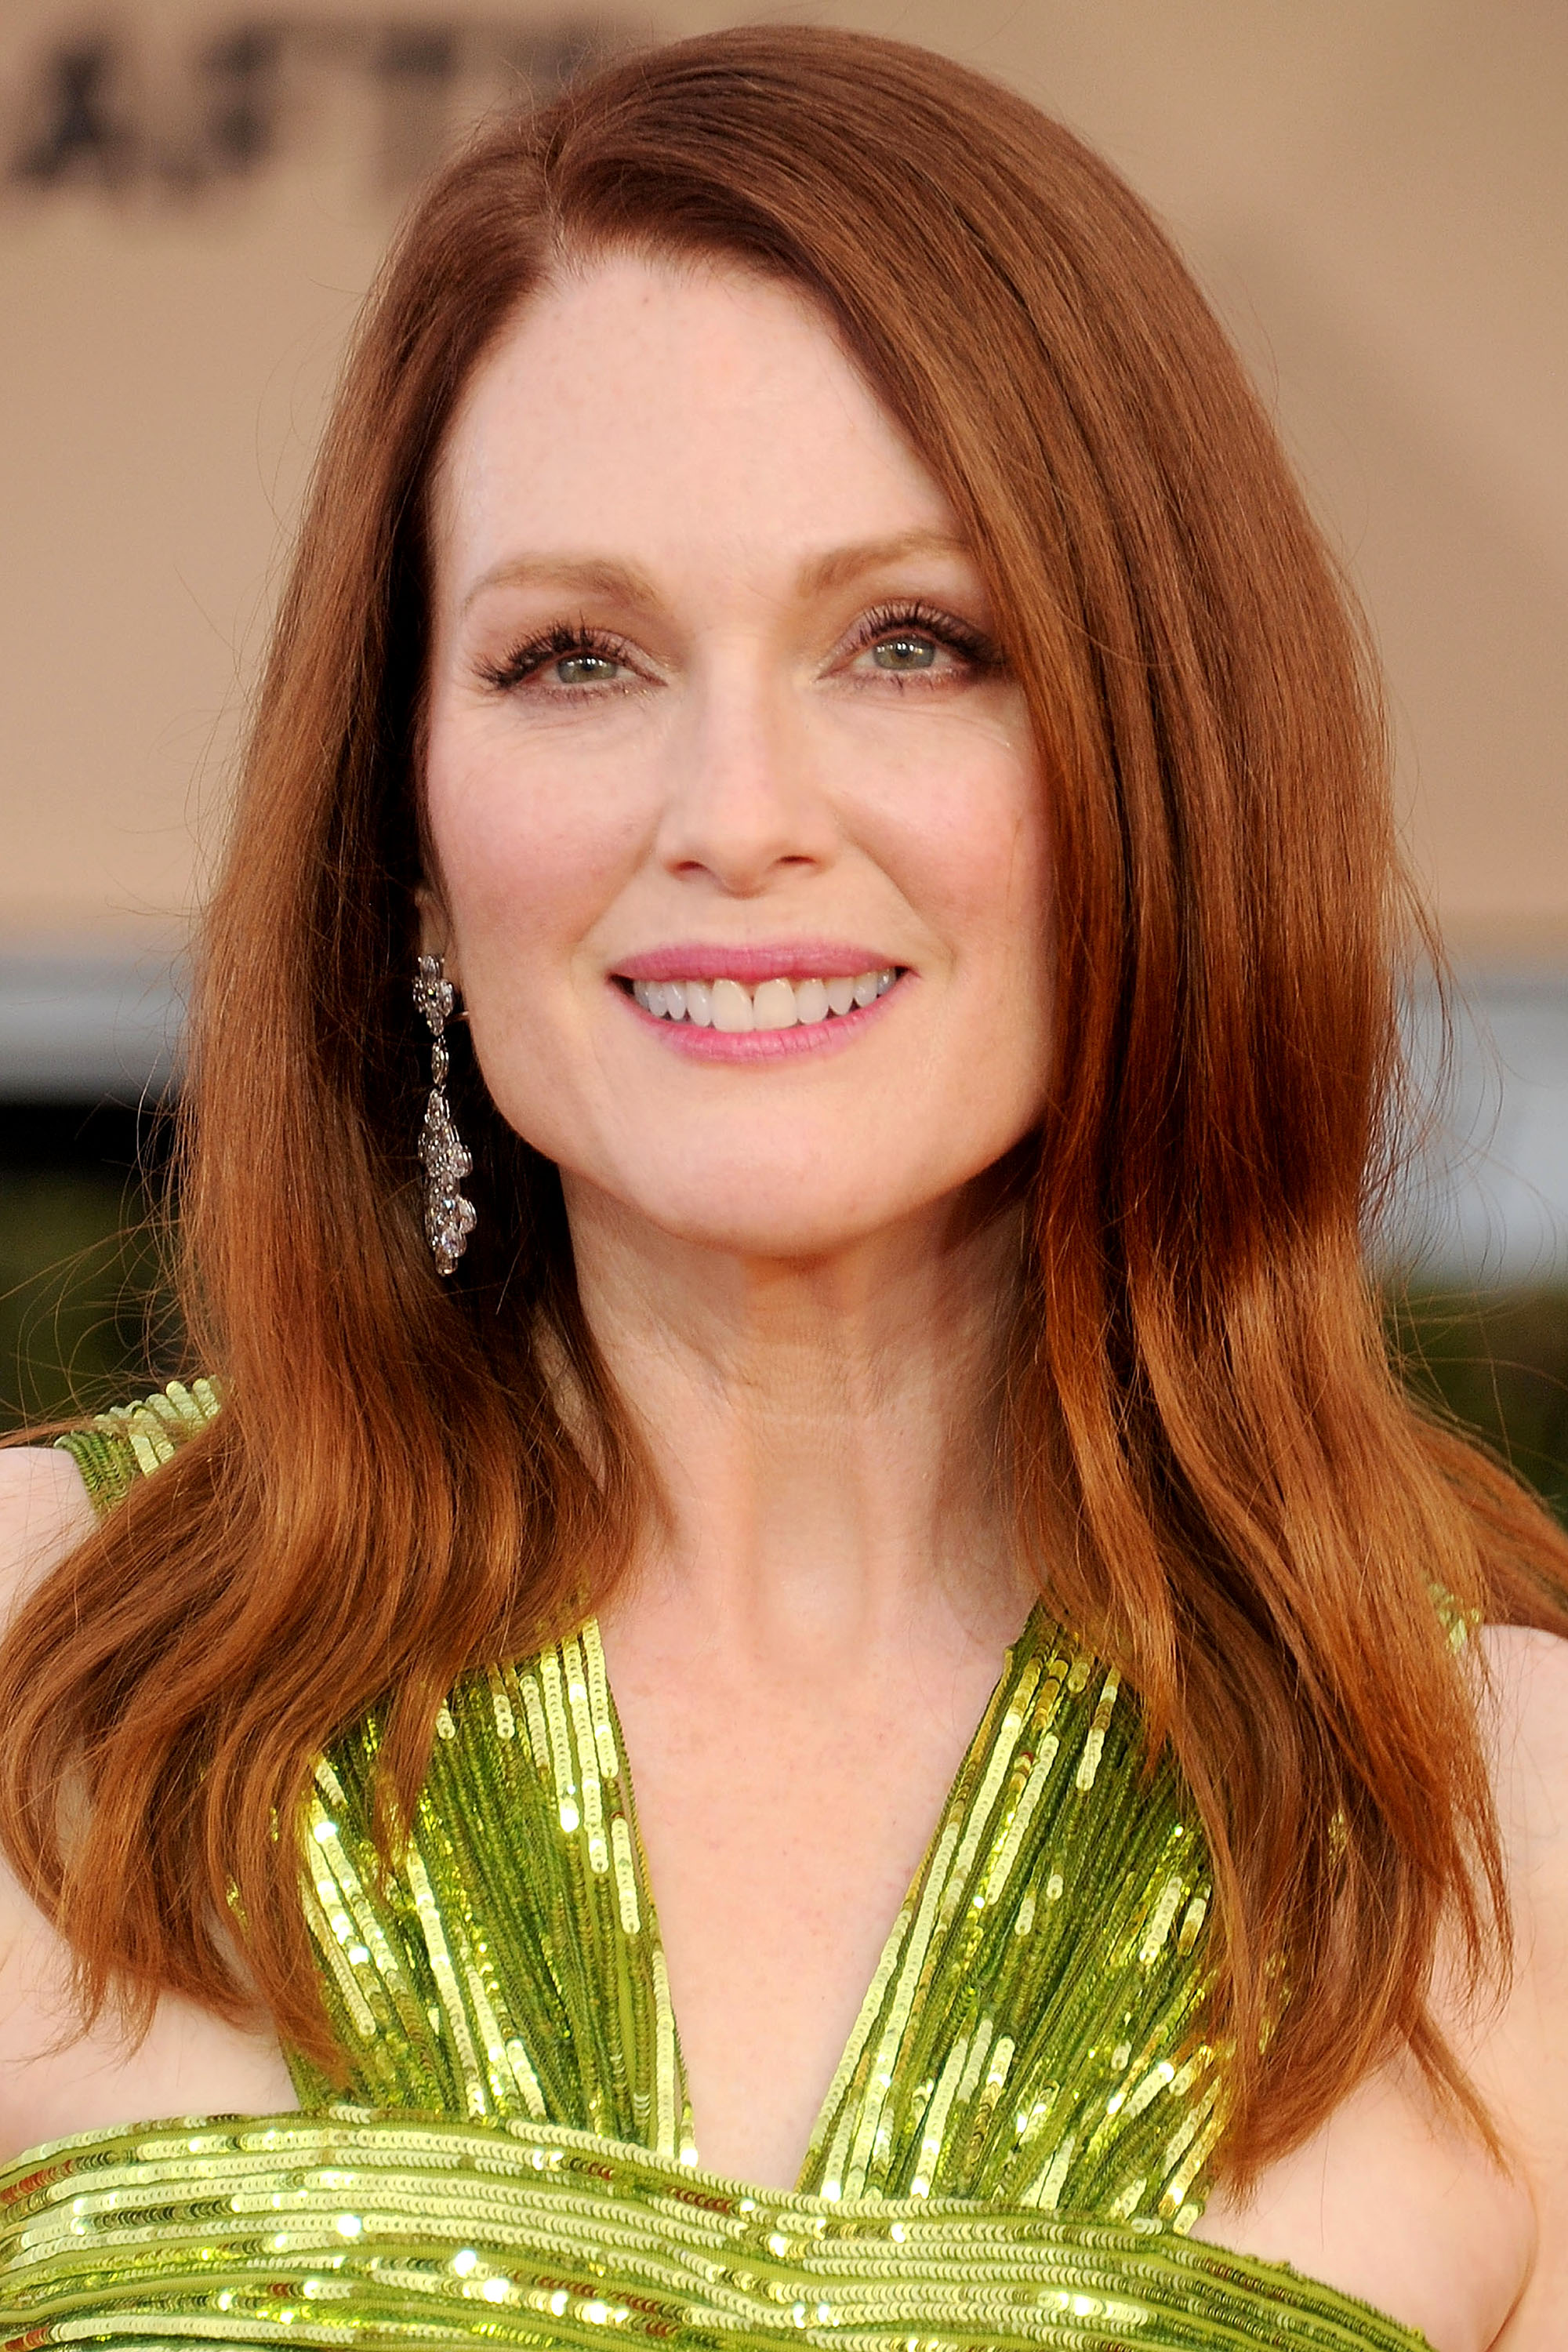 Spring Hairstyles : 10 Spring Haircuts 2016 - Best Celebrity Hairstyles for Spring